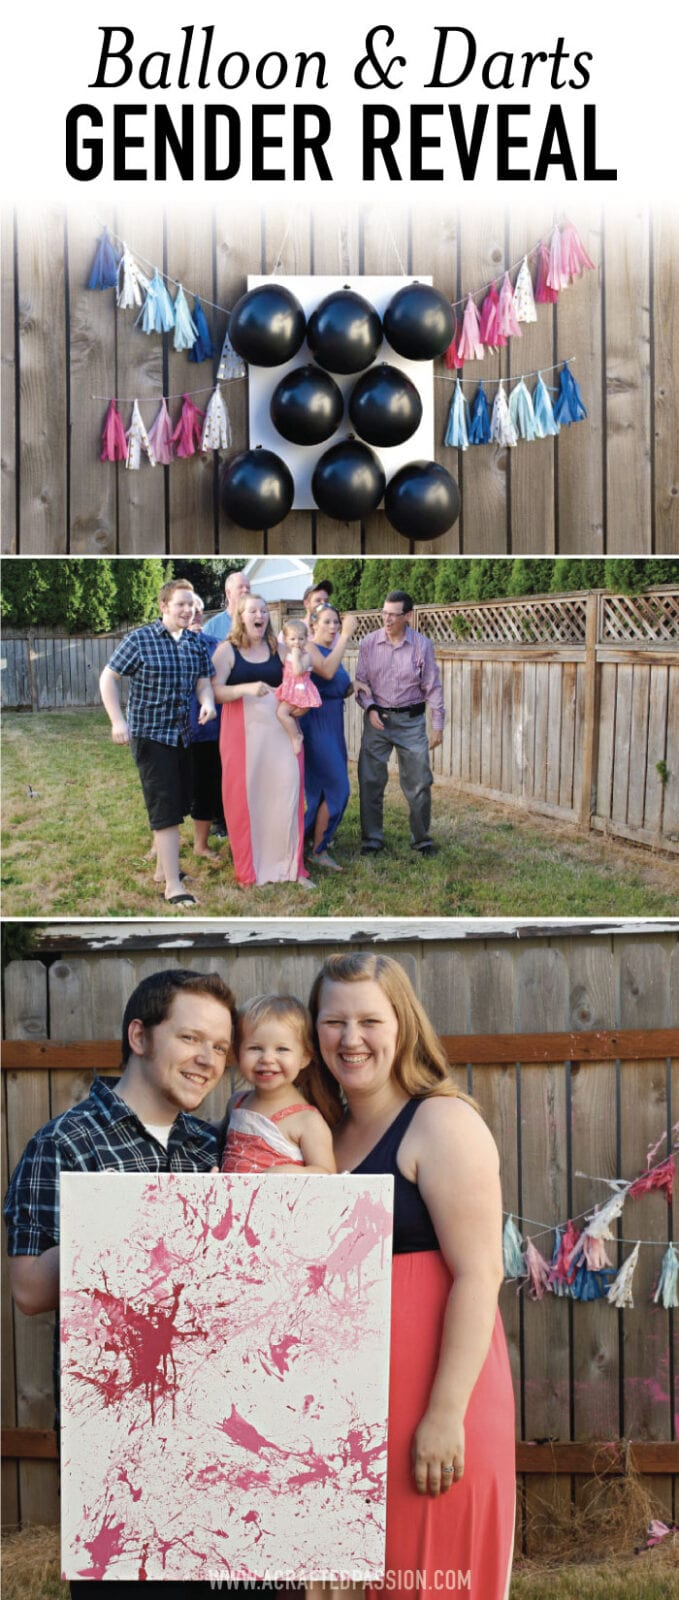 Get your guests involved with this balloon gender reveal idea using a canvas and darts! This easy DIY is such a fun way to find out what gender baby is. #genderreveal #babyontheway #pregnant